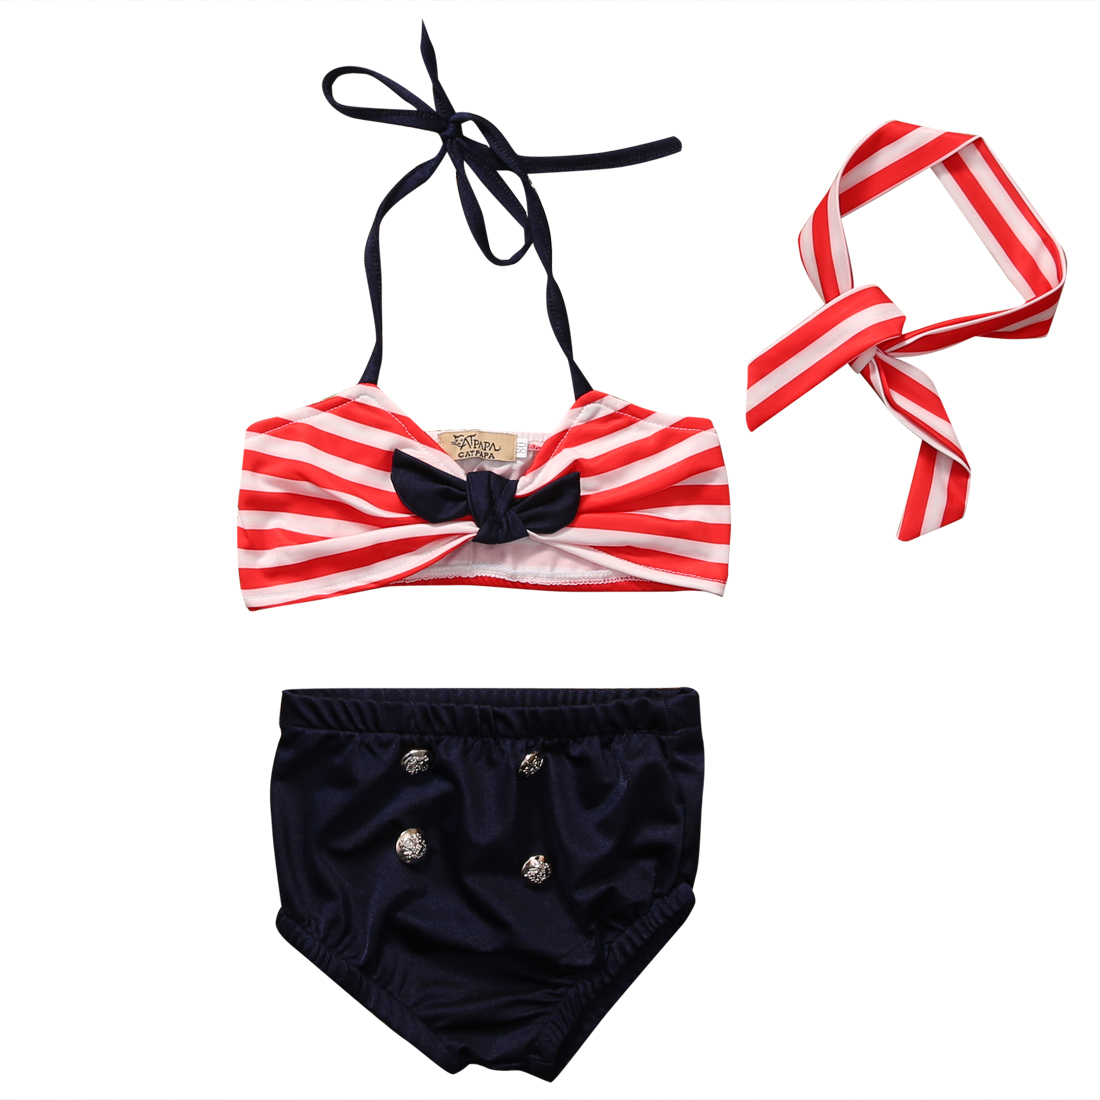 3Pcs Cute Kids Baby Girl ClothesBikini Sets Stripe tops+Bottoms+Headband Swimwear Swimming Kids Girls Summer Clothes 3pcs outfit infantil girls clothes toddler baby girl plaid ruffled tops kids girls denim shorts cute headband summer outfits set